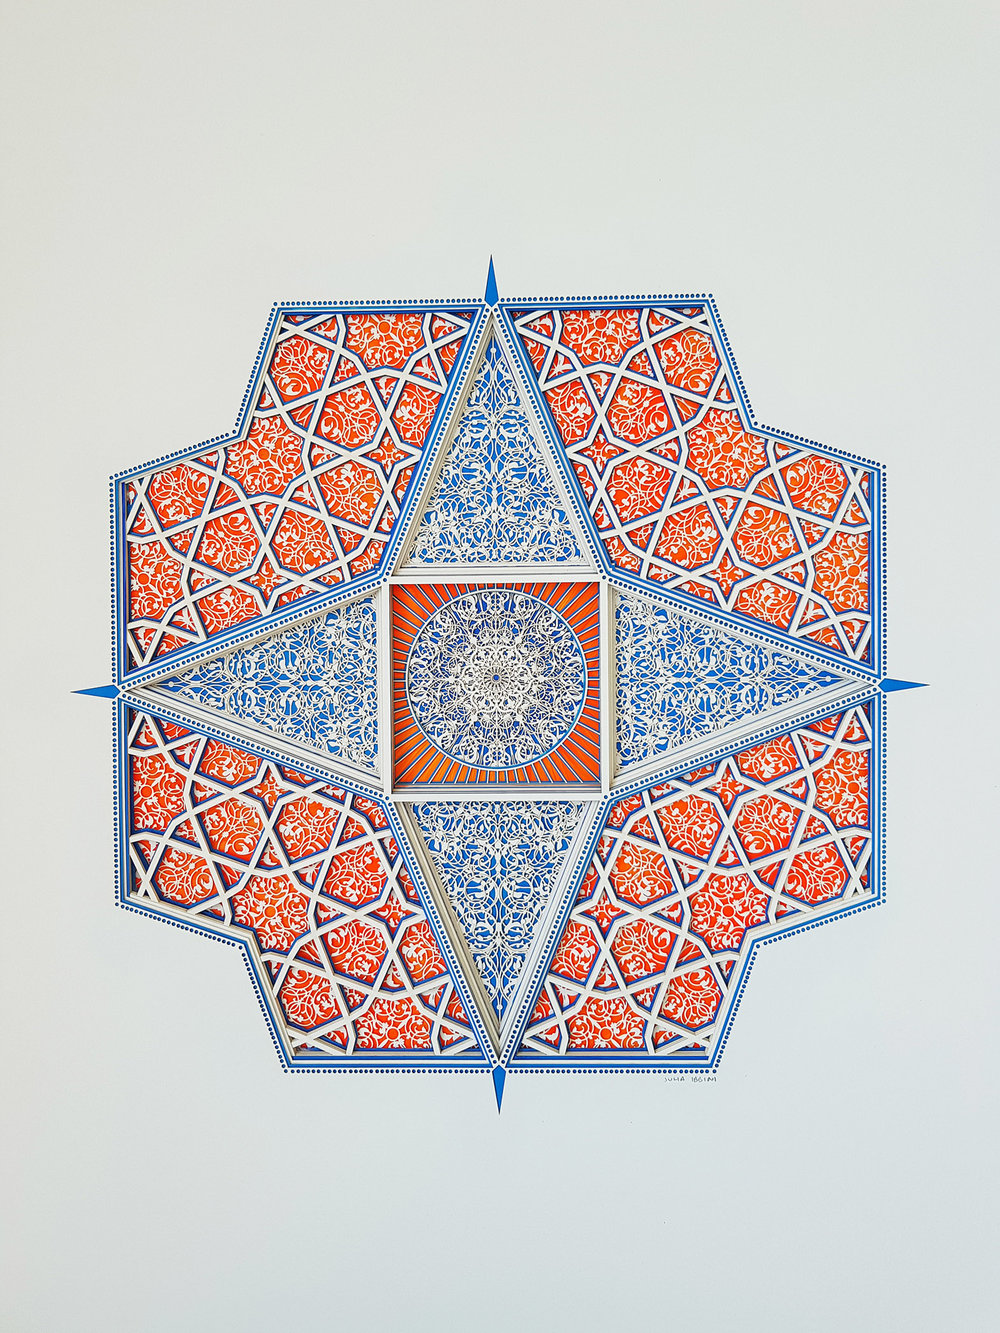 Untitled Study (Touba)-45x60-lasercut paper over ink on mylar-Julia Ibbini - $2500.jpg